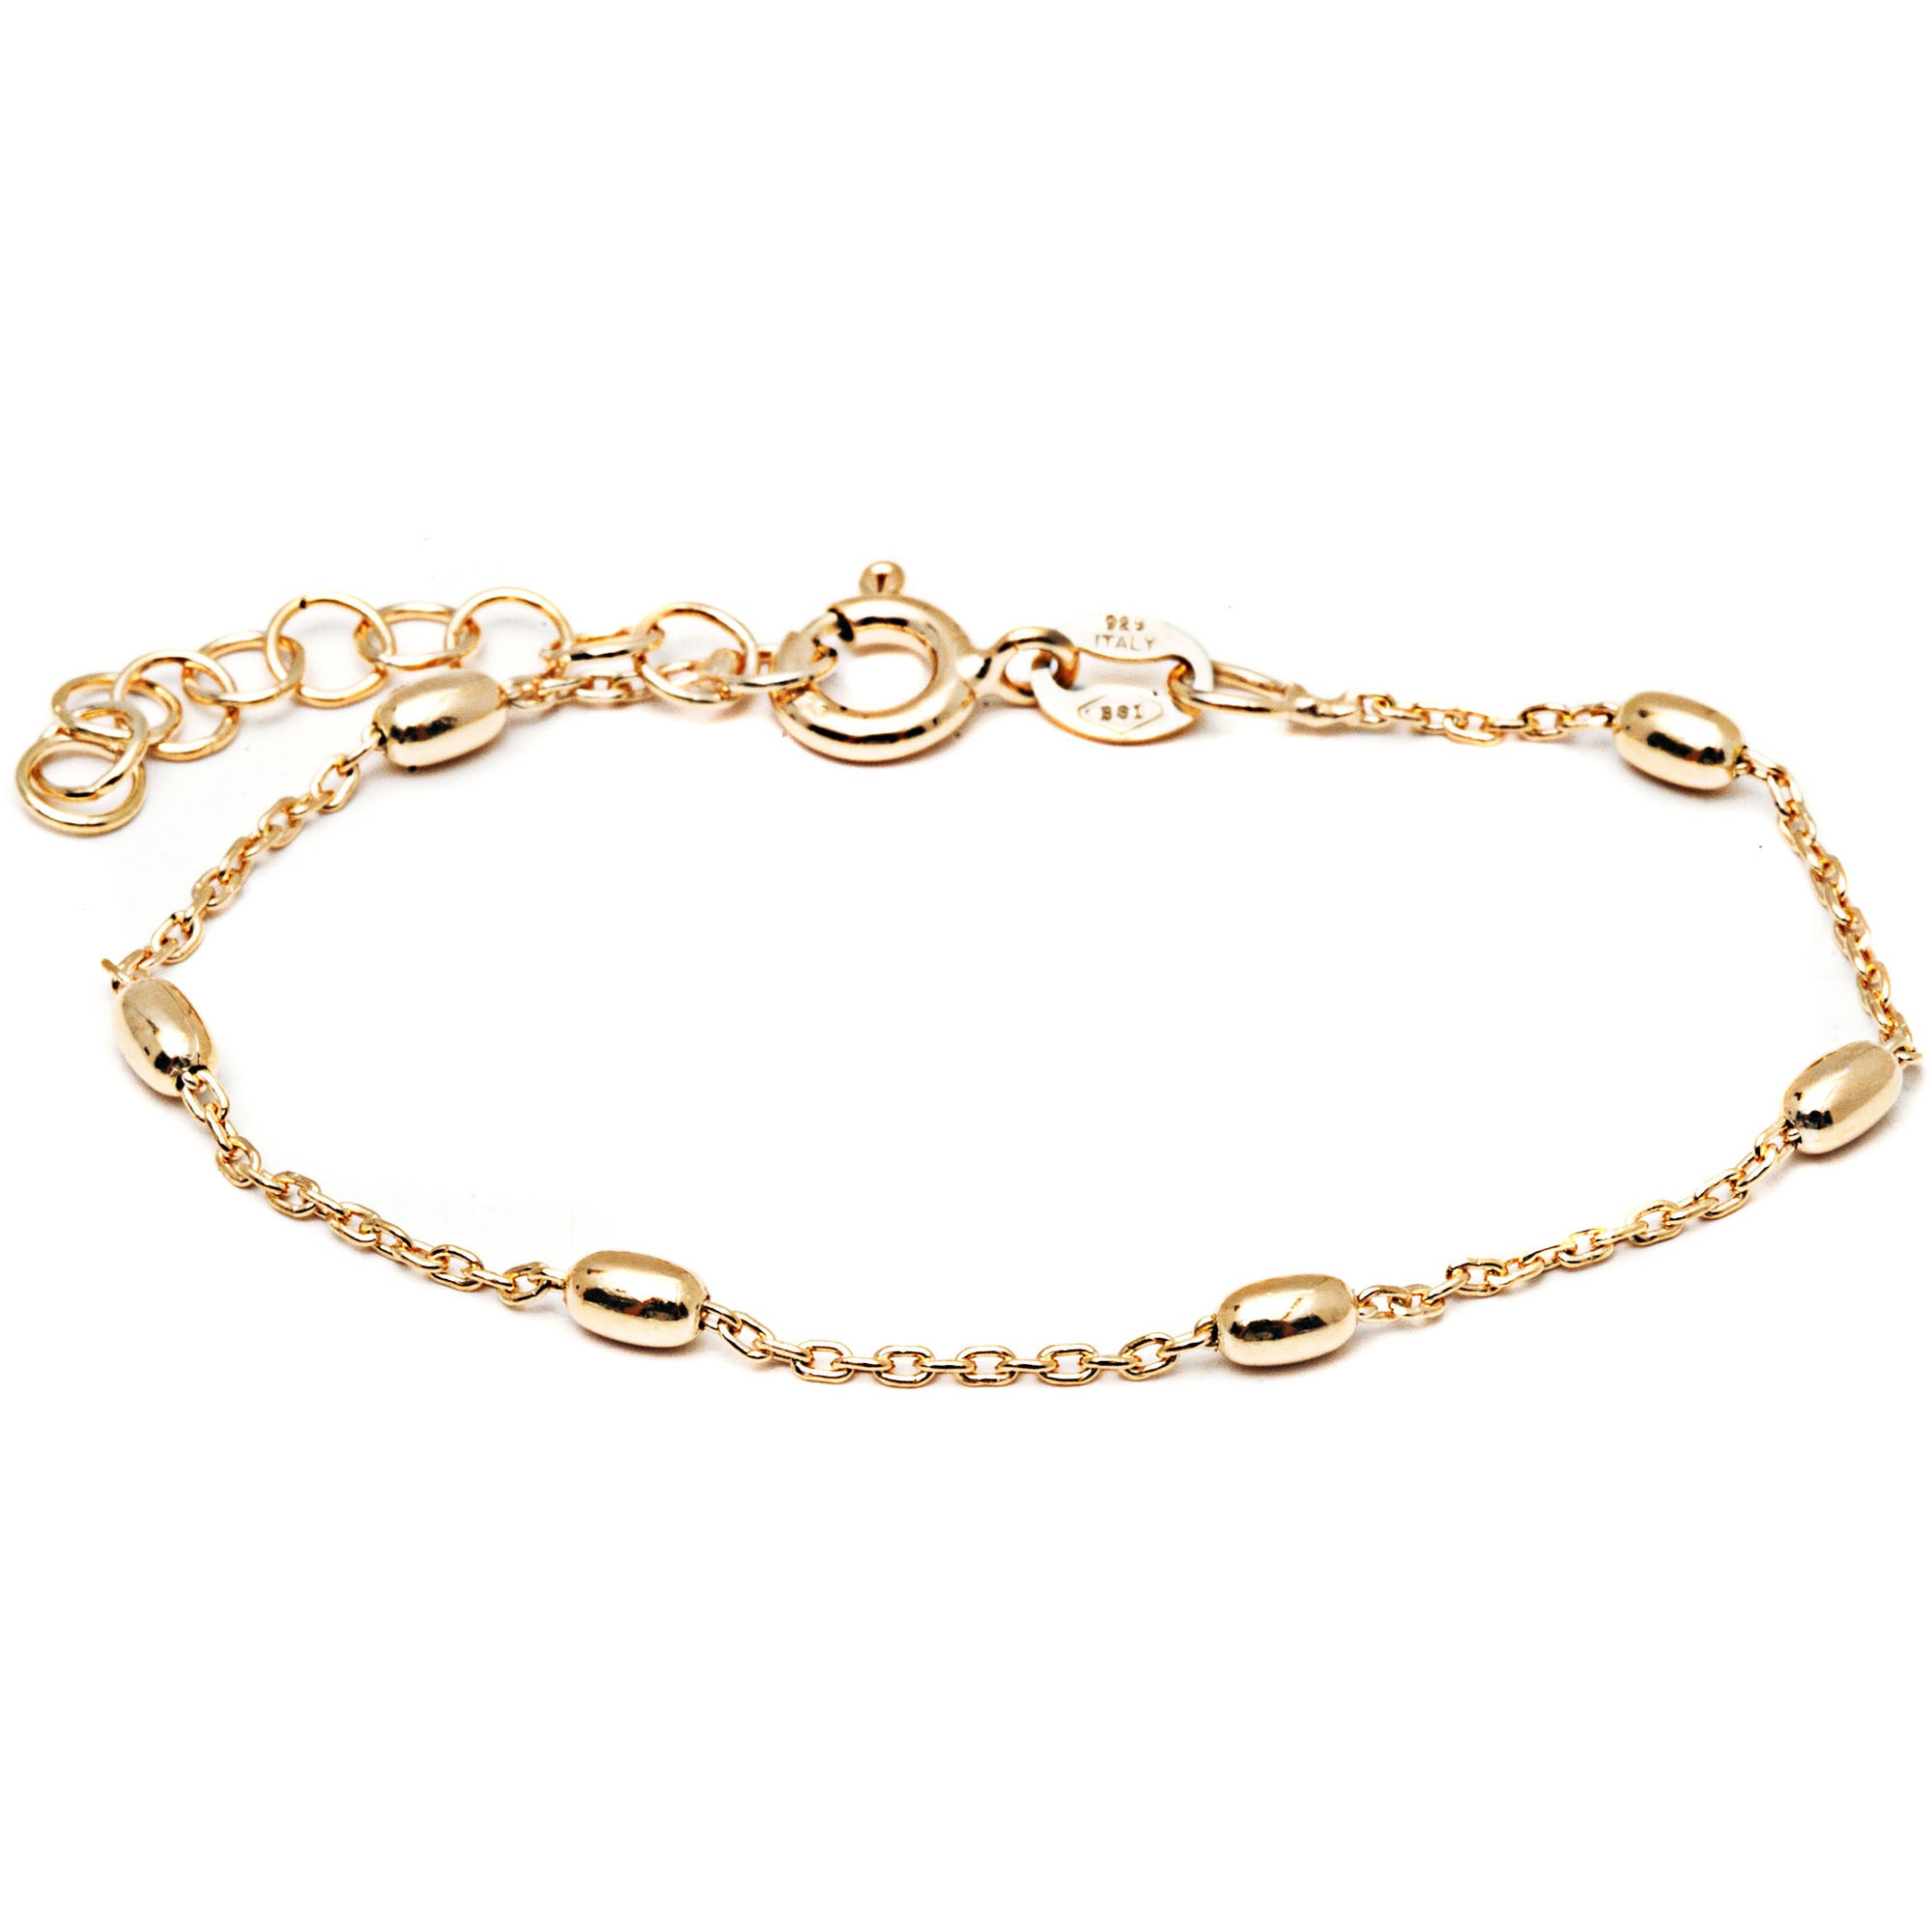 """Pori Jewelers 18kt Gold-Plated Sterling Silver Kids' Oval Bead Bracelet, 6"""" Anchor Chain"""